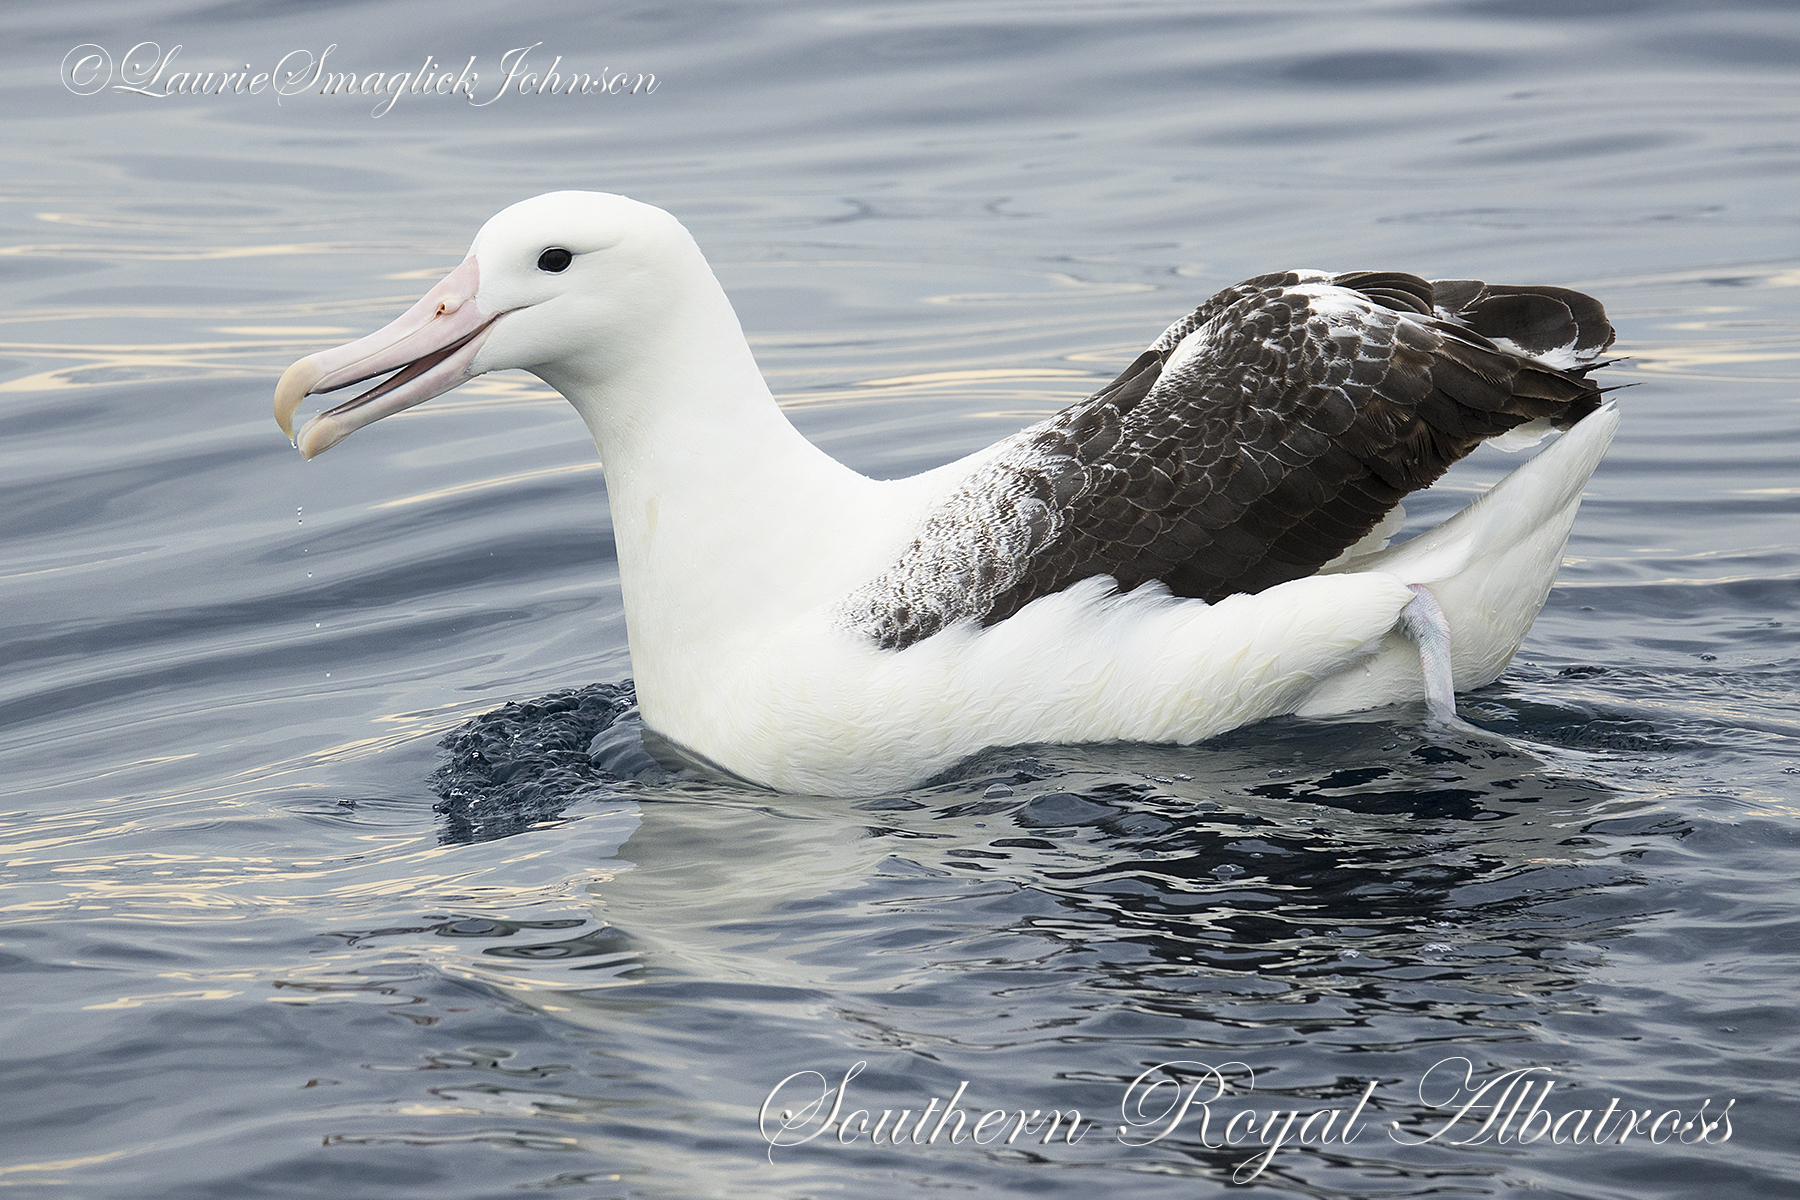 Colouring in Southern Royal Albatross, Diana Andersen